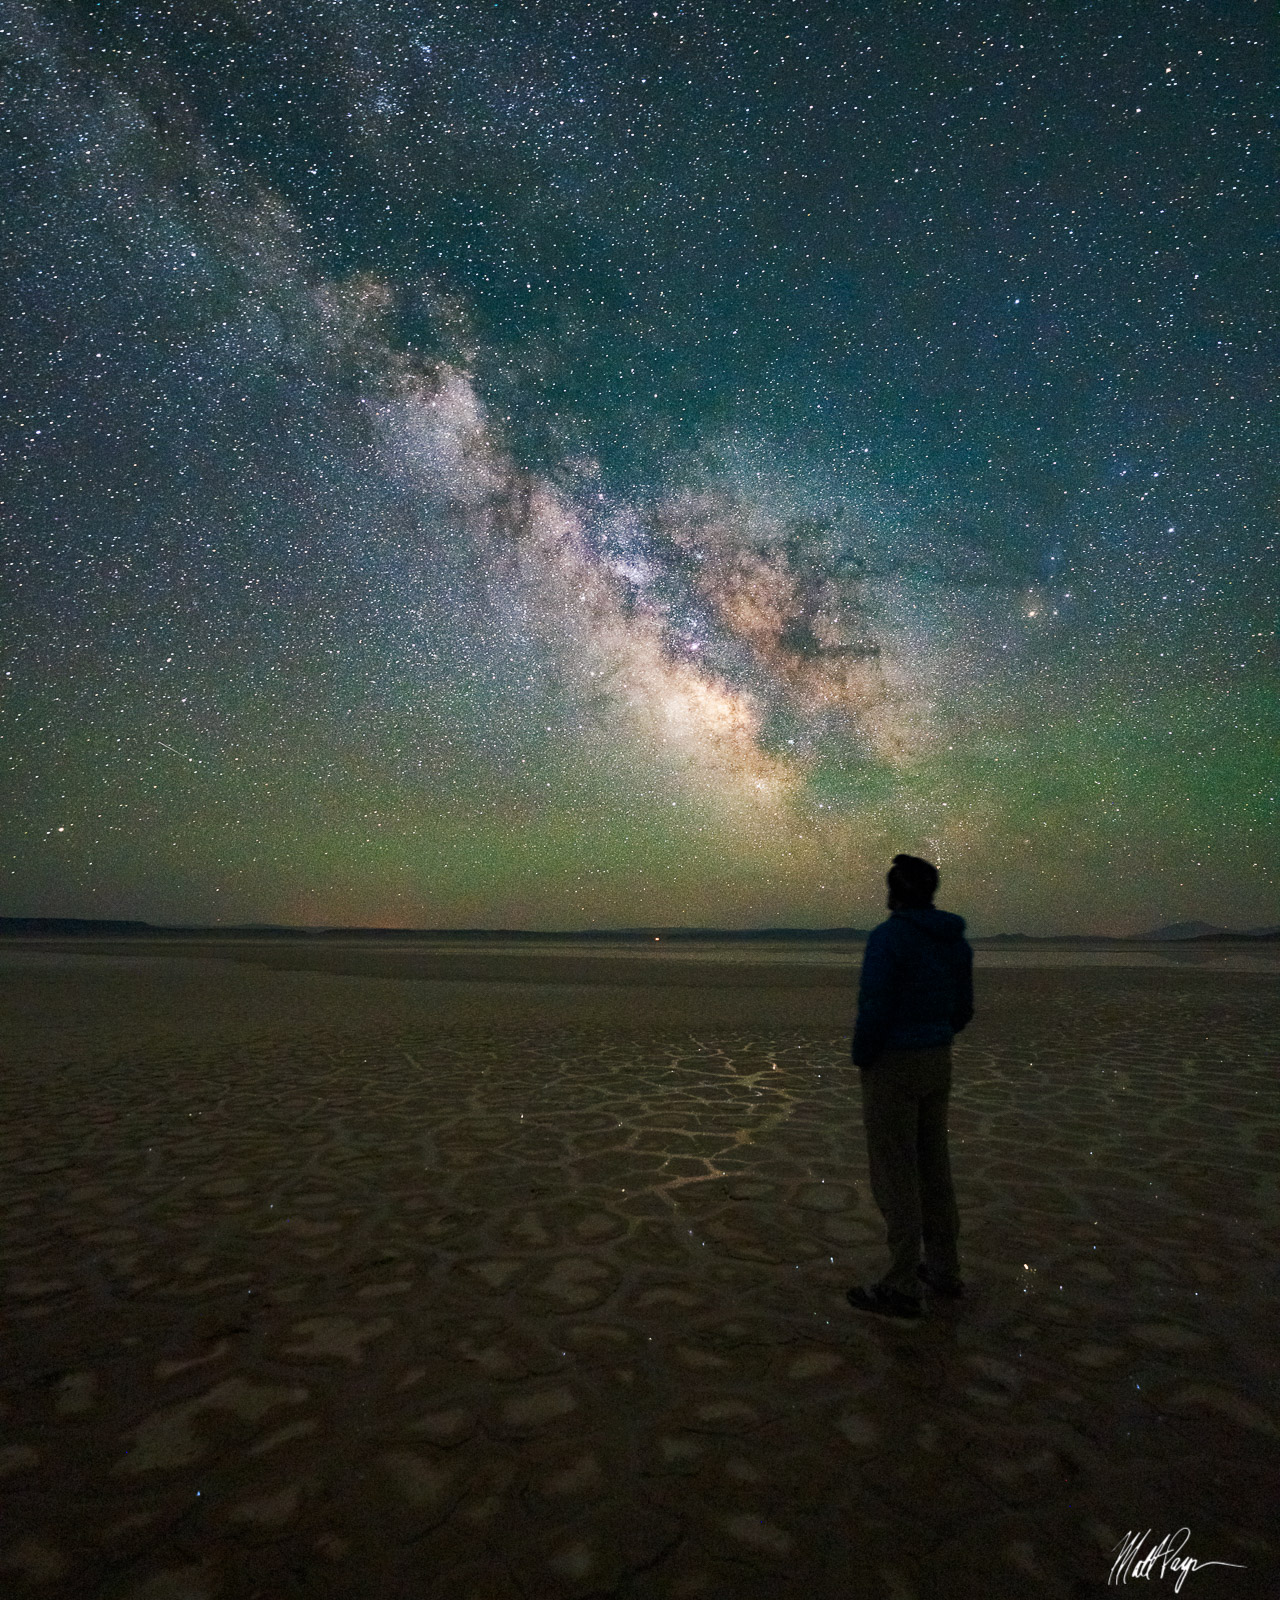 It was an absolute joy to meet Ben Canales and photograph the night skies with him on the Oregon desert. This self-portrait underneath...